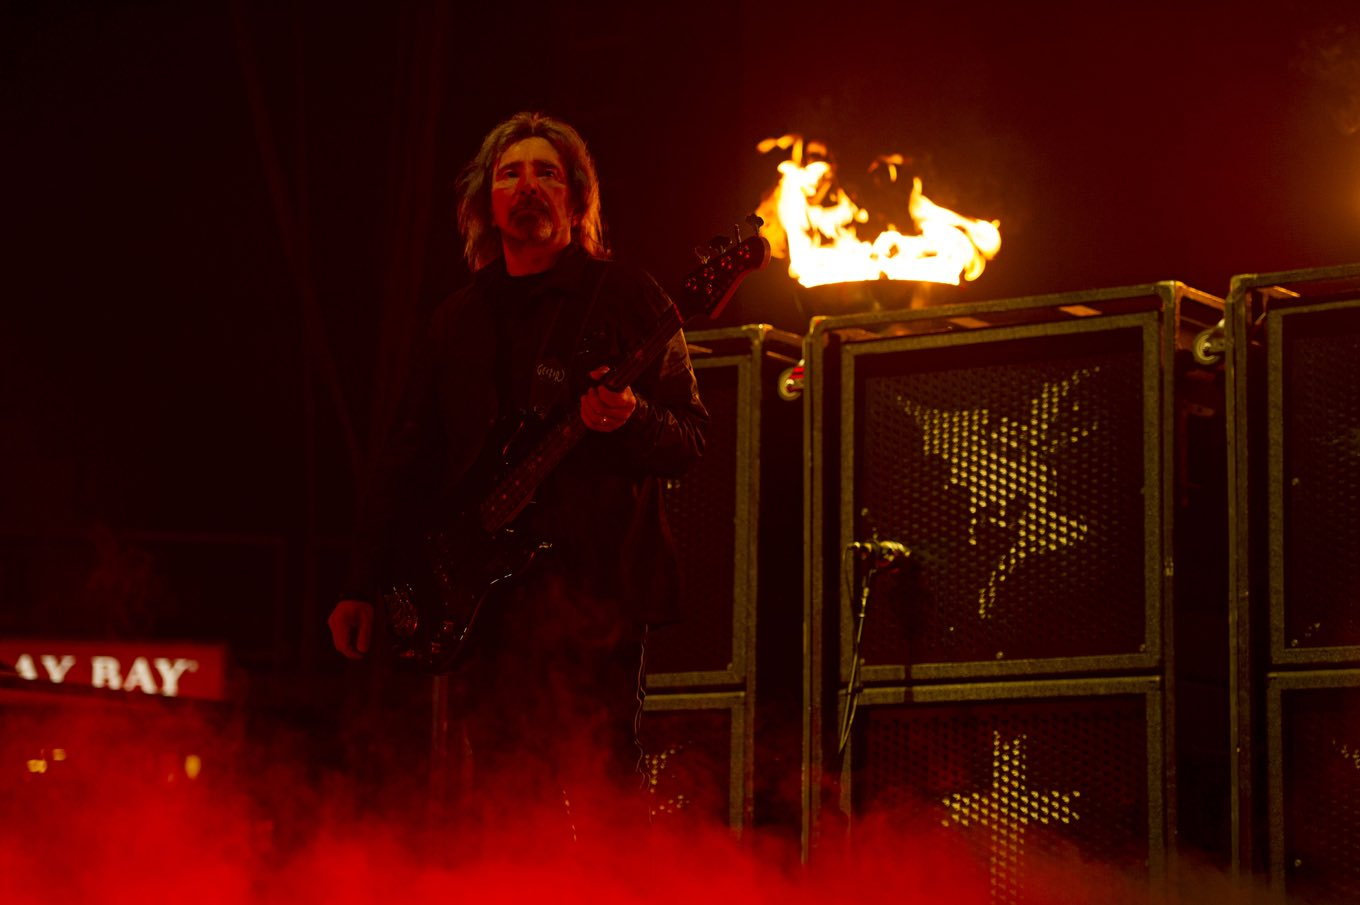 """Black Sabbath's Geezer Butler Looks Ahead and Talks About """"The End"""""""